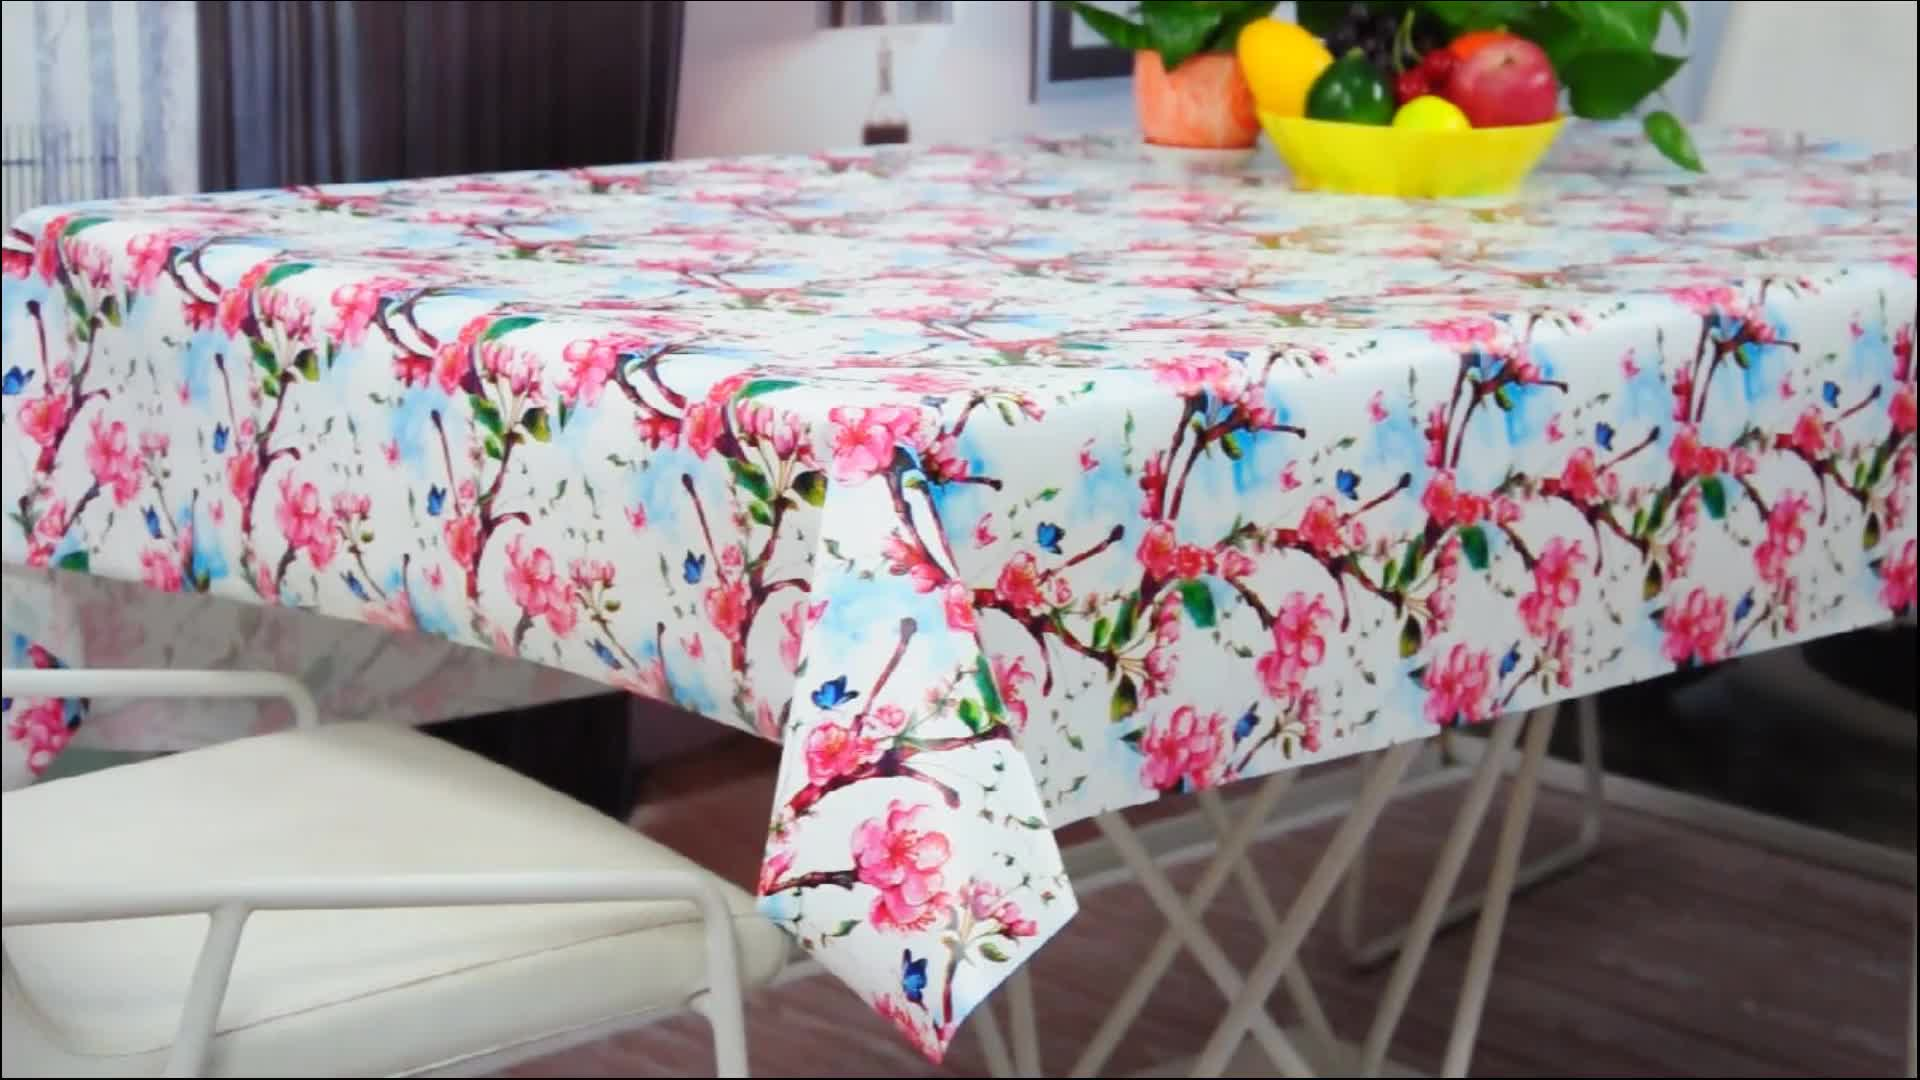 Eco Friendly Waterproof Pvc Tablecloth Pvc Table Cover Food Contact